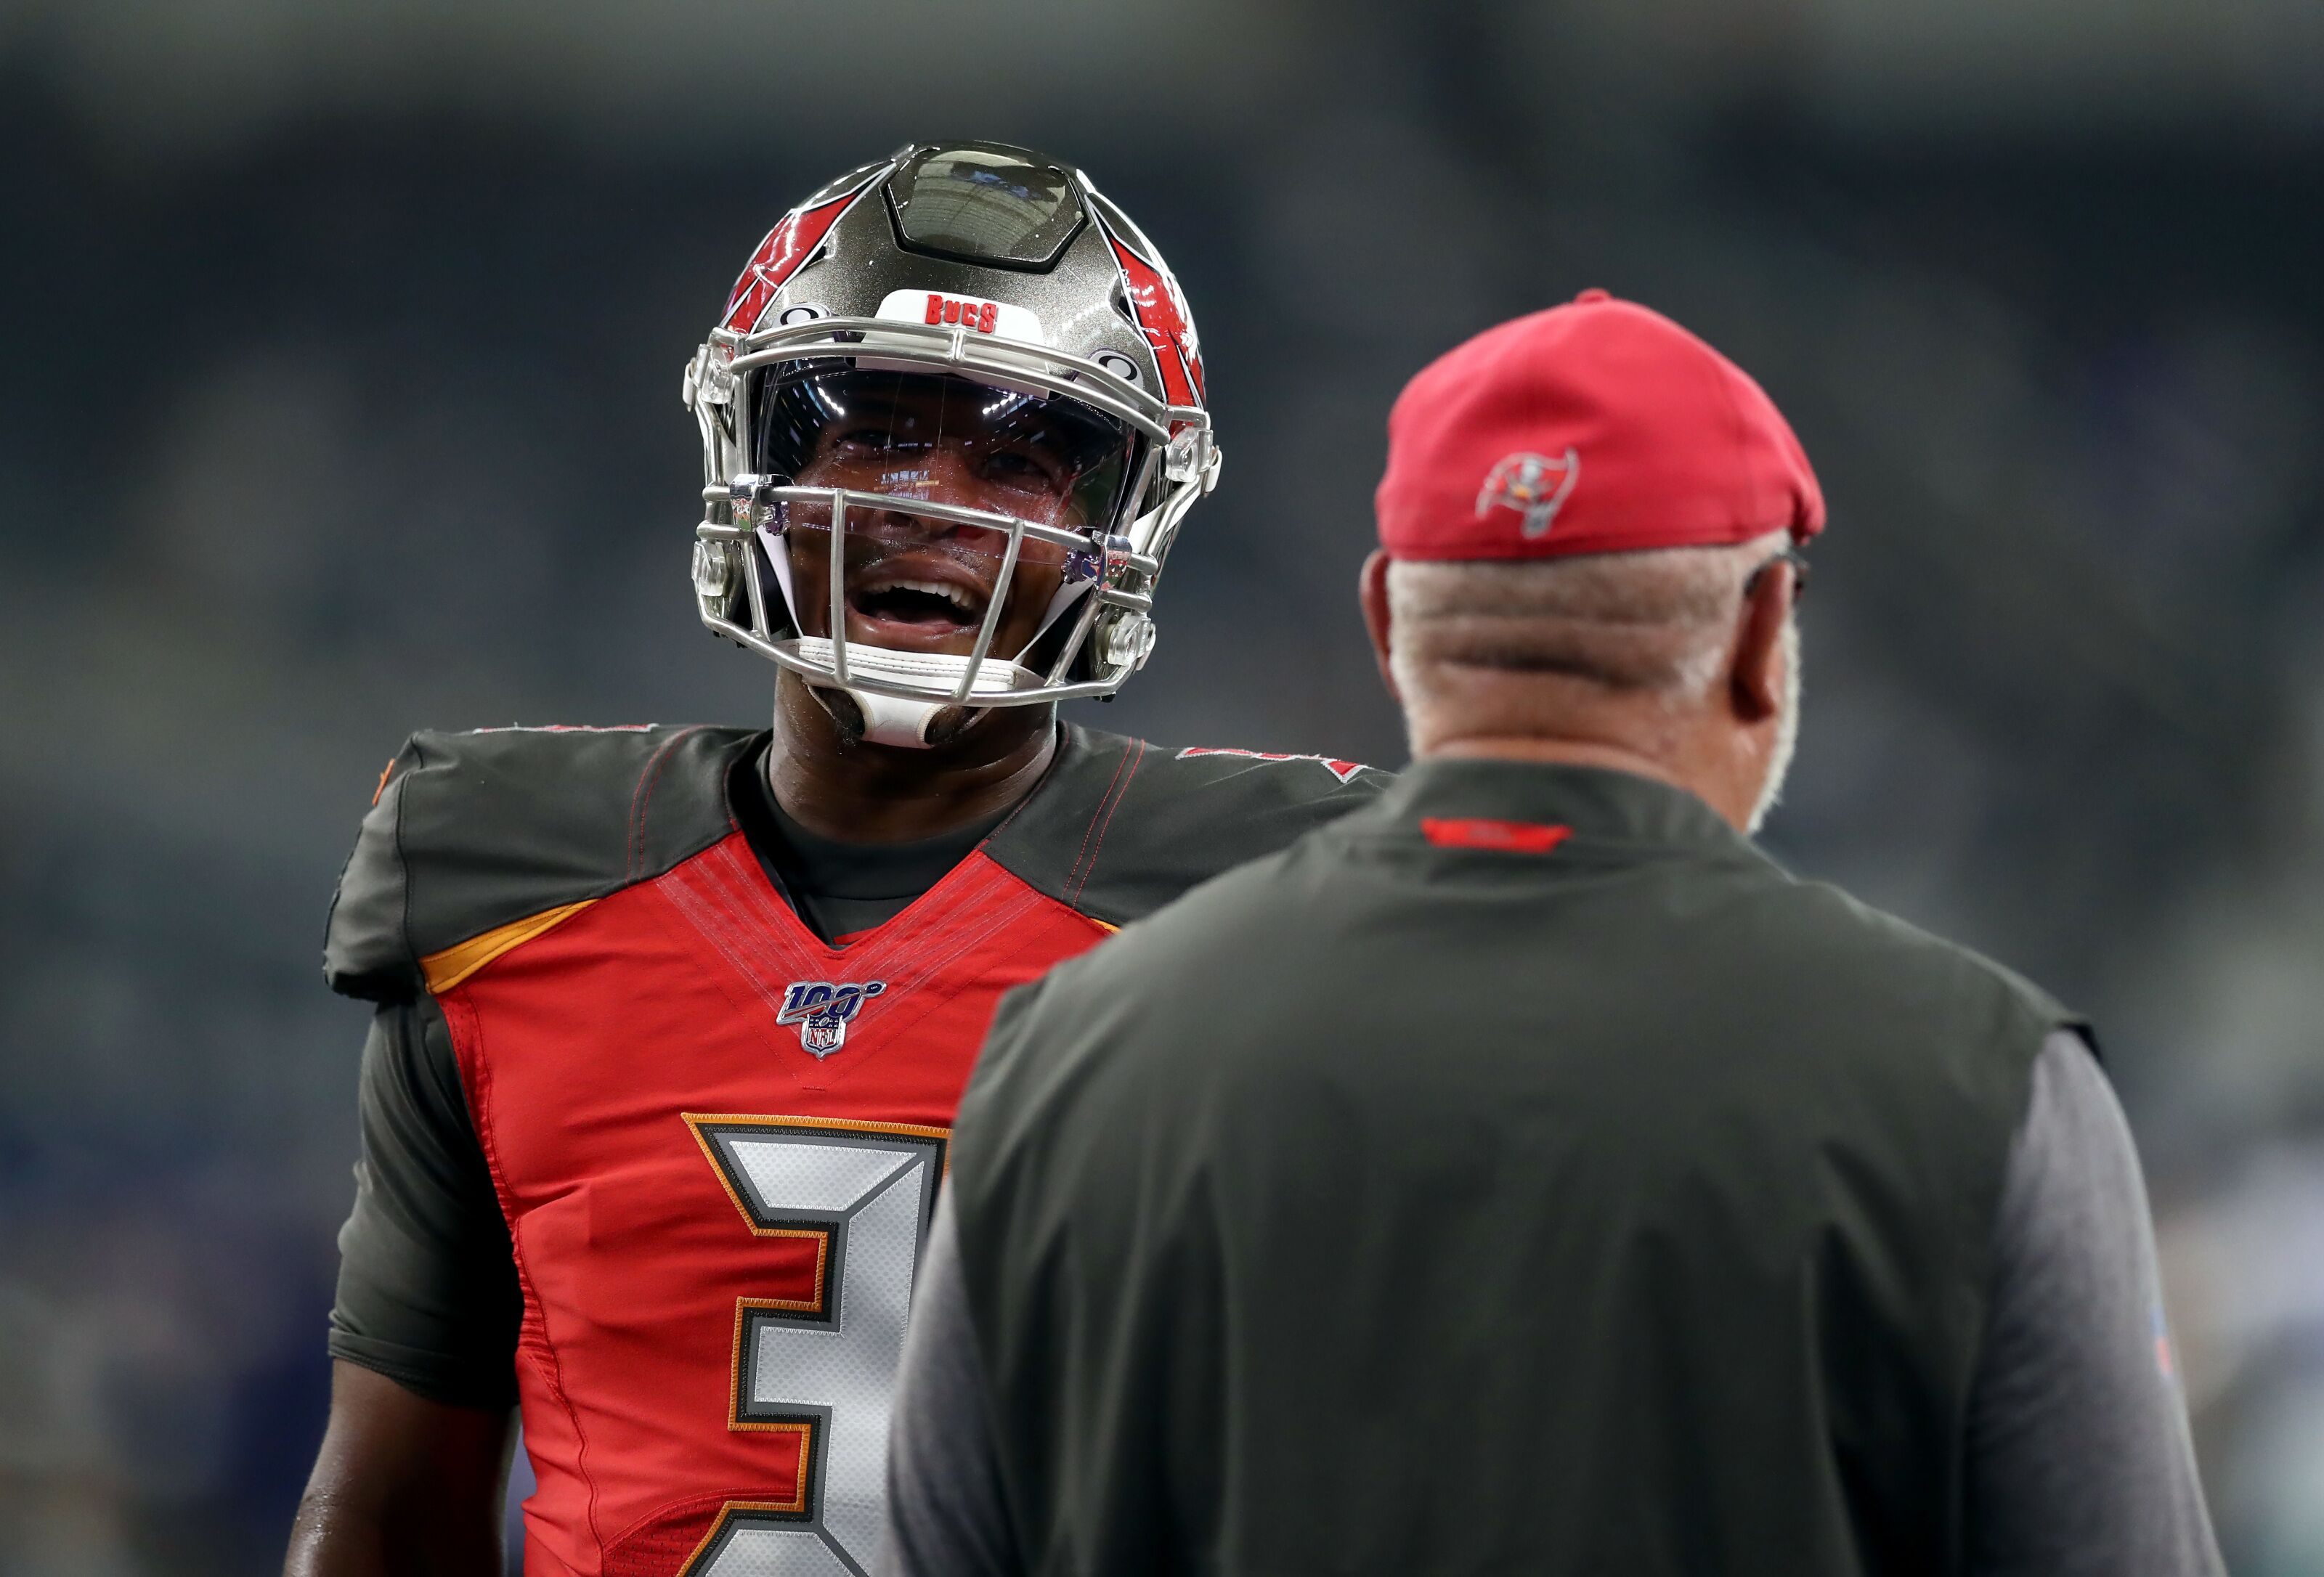 Bruce Arians hinting at possible departure for Jameis Winston?